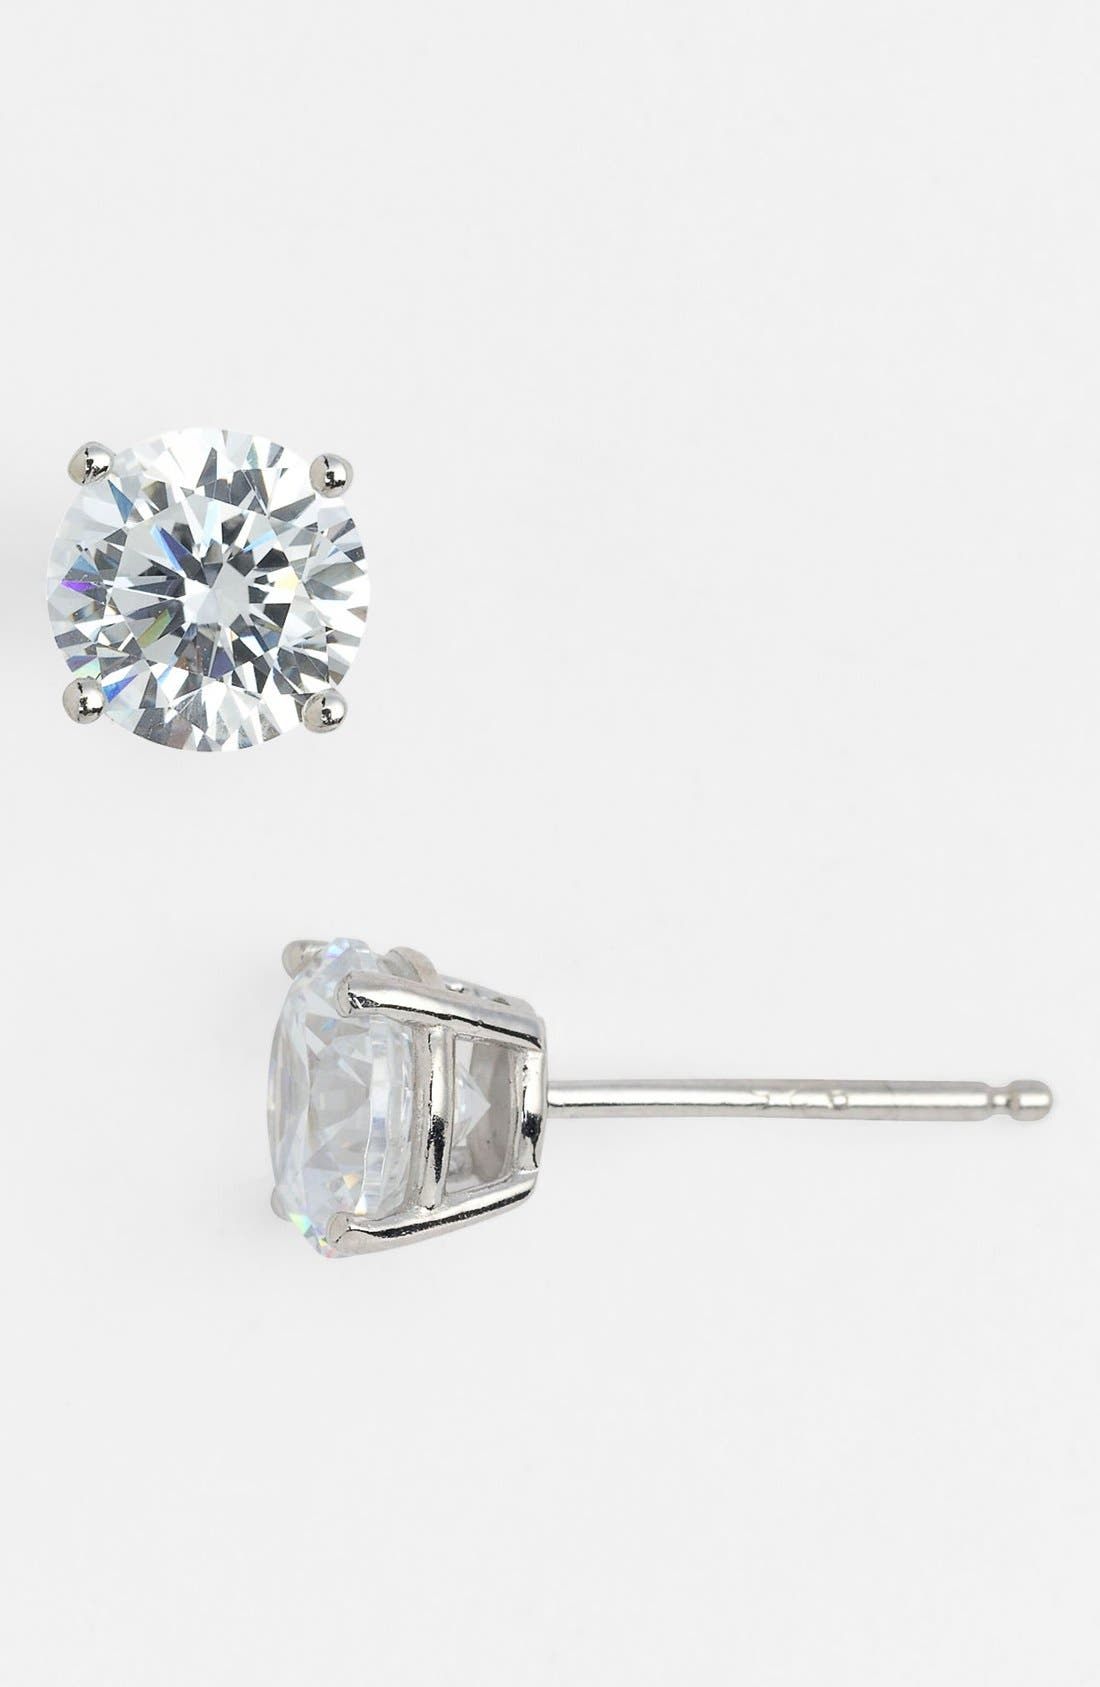 Main Image - Nordstrom 2ct tw Cubic Zirconia Stud Earrings (Special Purchase)